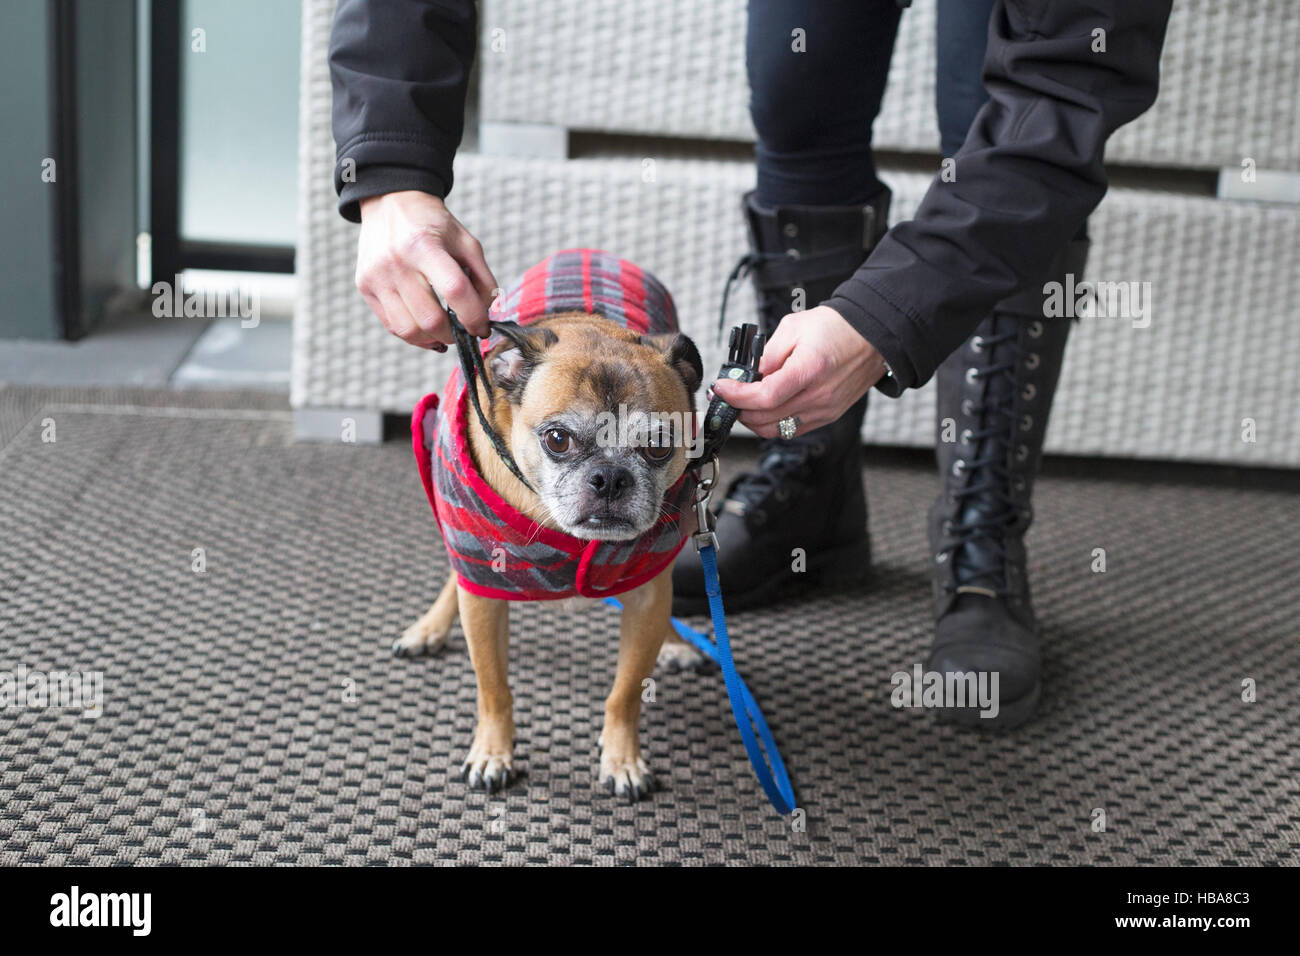 Woman getting her dog ready to go out for a walk in cold weather (Bugg dog, cross between Boston Terrier and Pug) - Stock Image